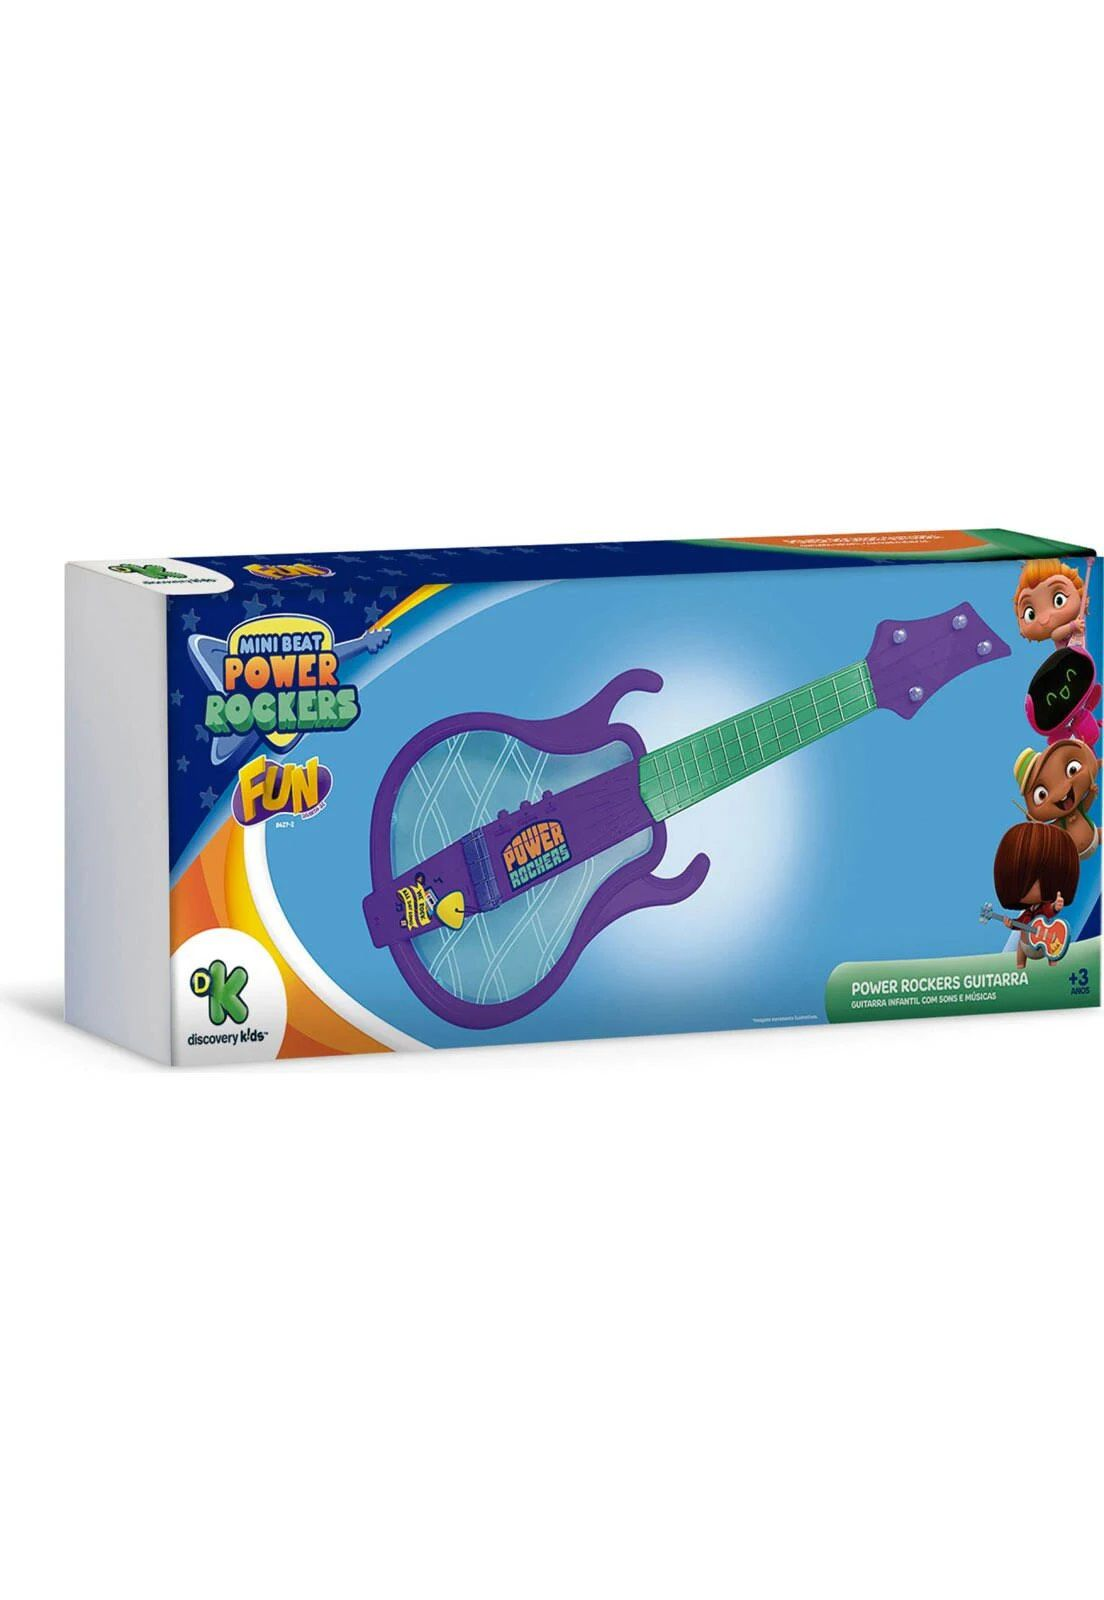 Guitarra Infantil Musical Iluminada Power Rockers 84272 Fun